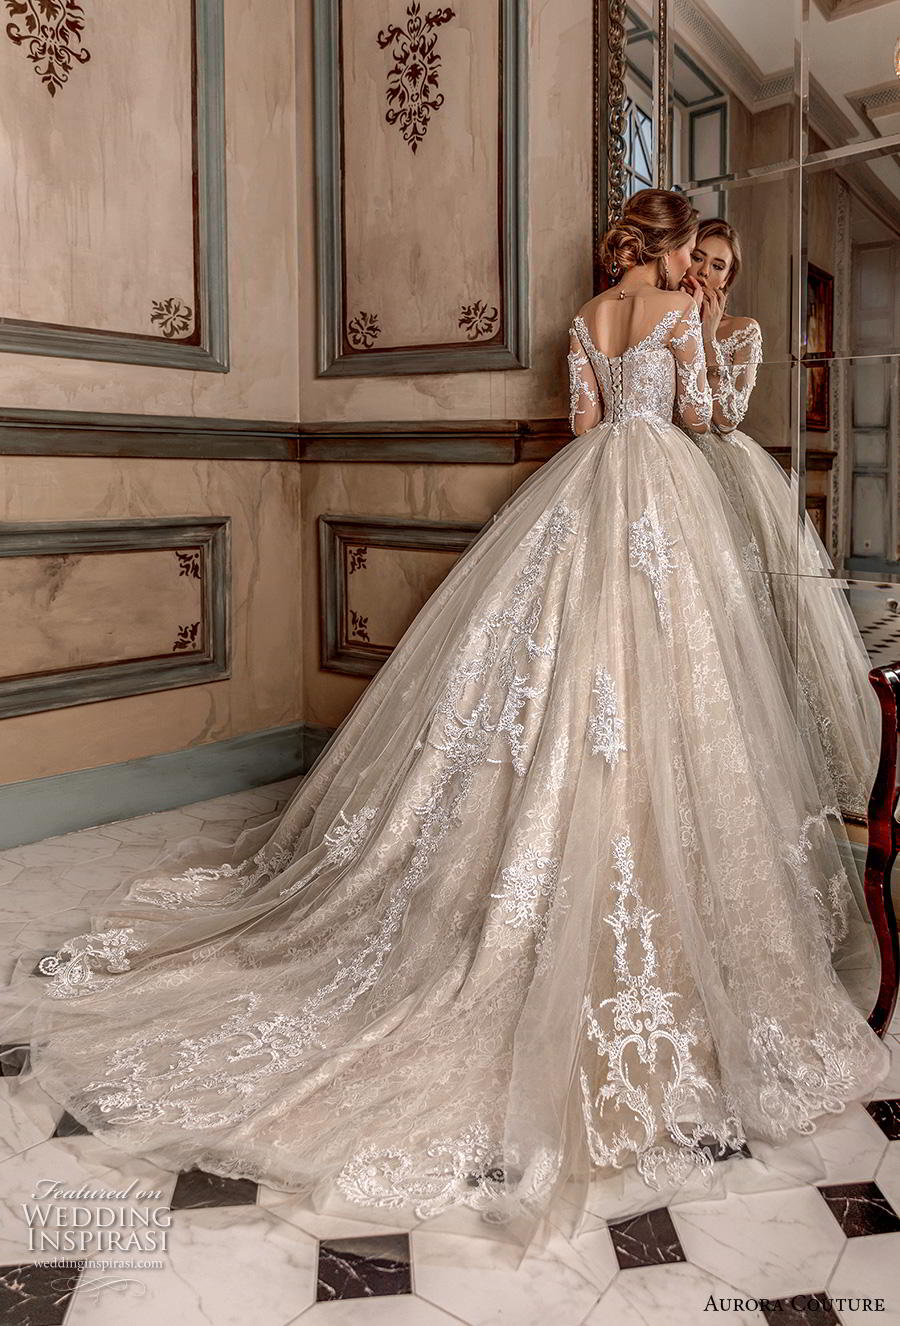 aurora couture 2019 bridal long sleeves illiusion off the shoulder sweetheart neckline full embellishment princess ball gown a  line wedding dress mid back chapel train (5) bv